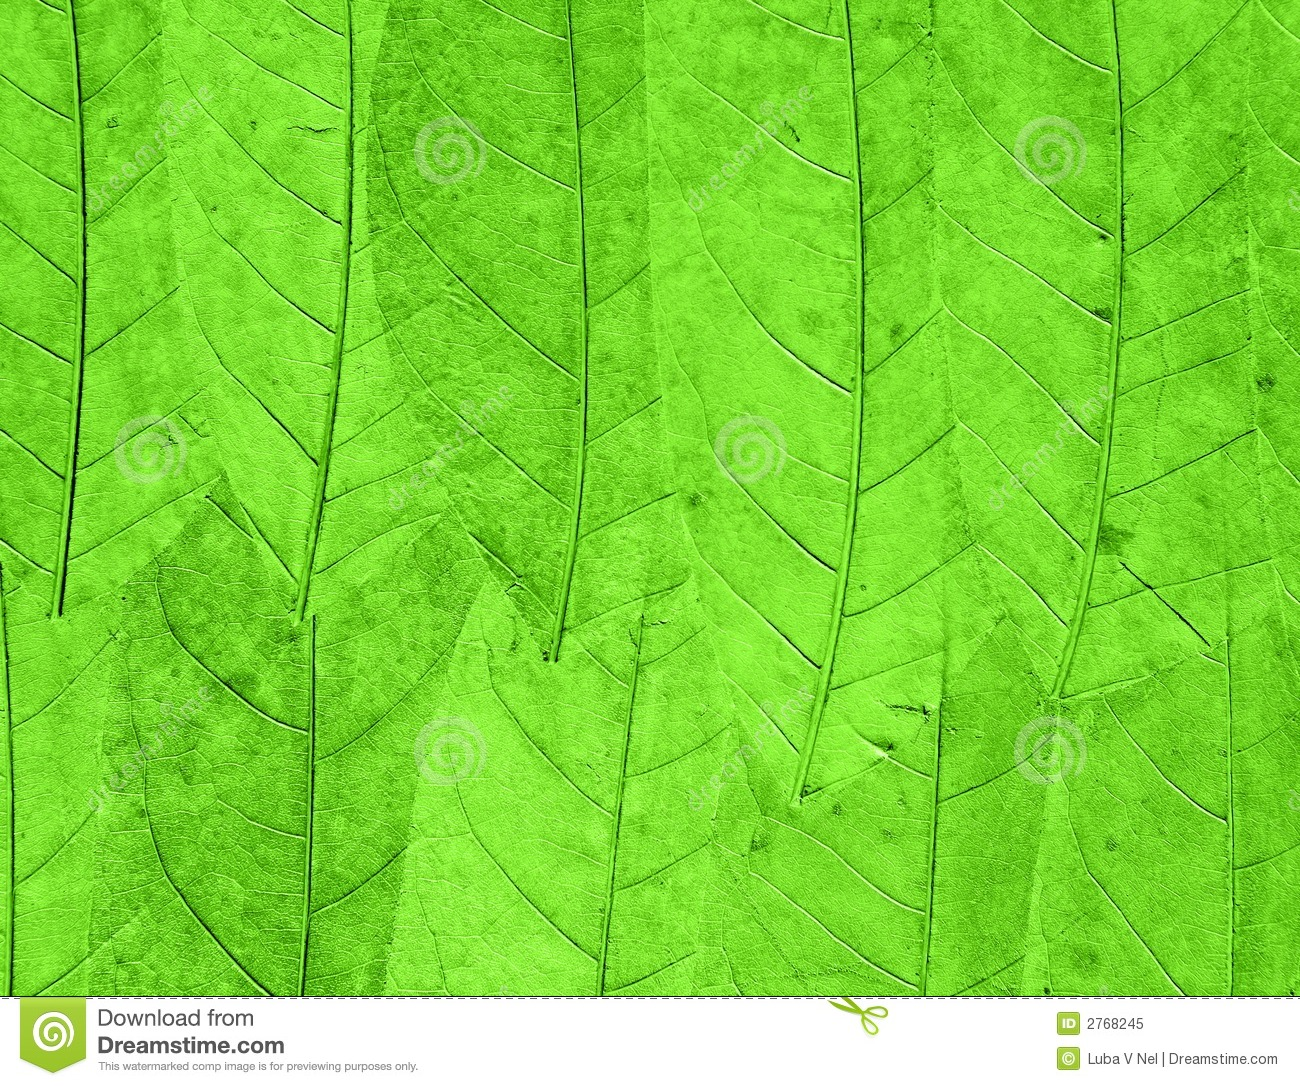 Green Leaves Background Royalty Free Stock Photo - Image: 2768245